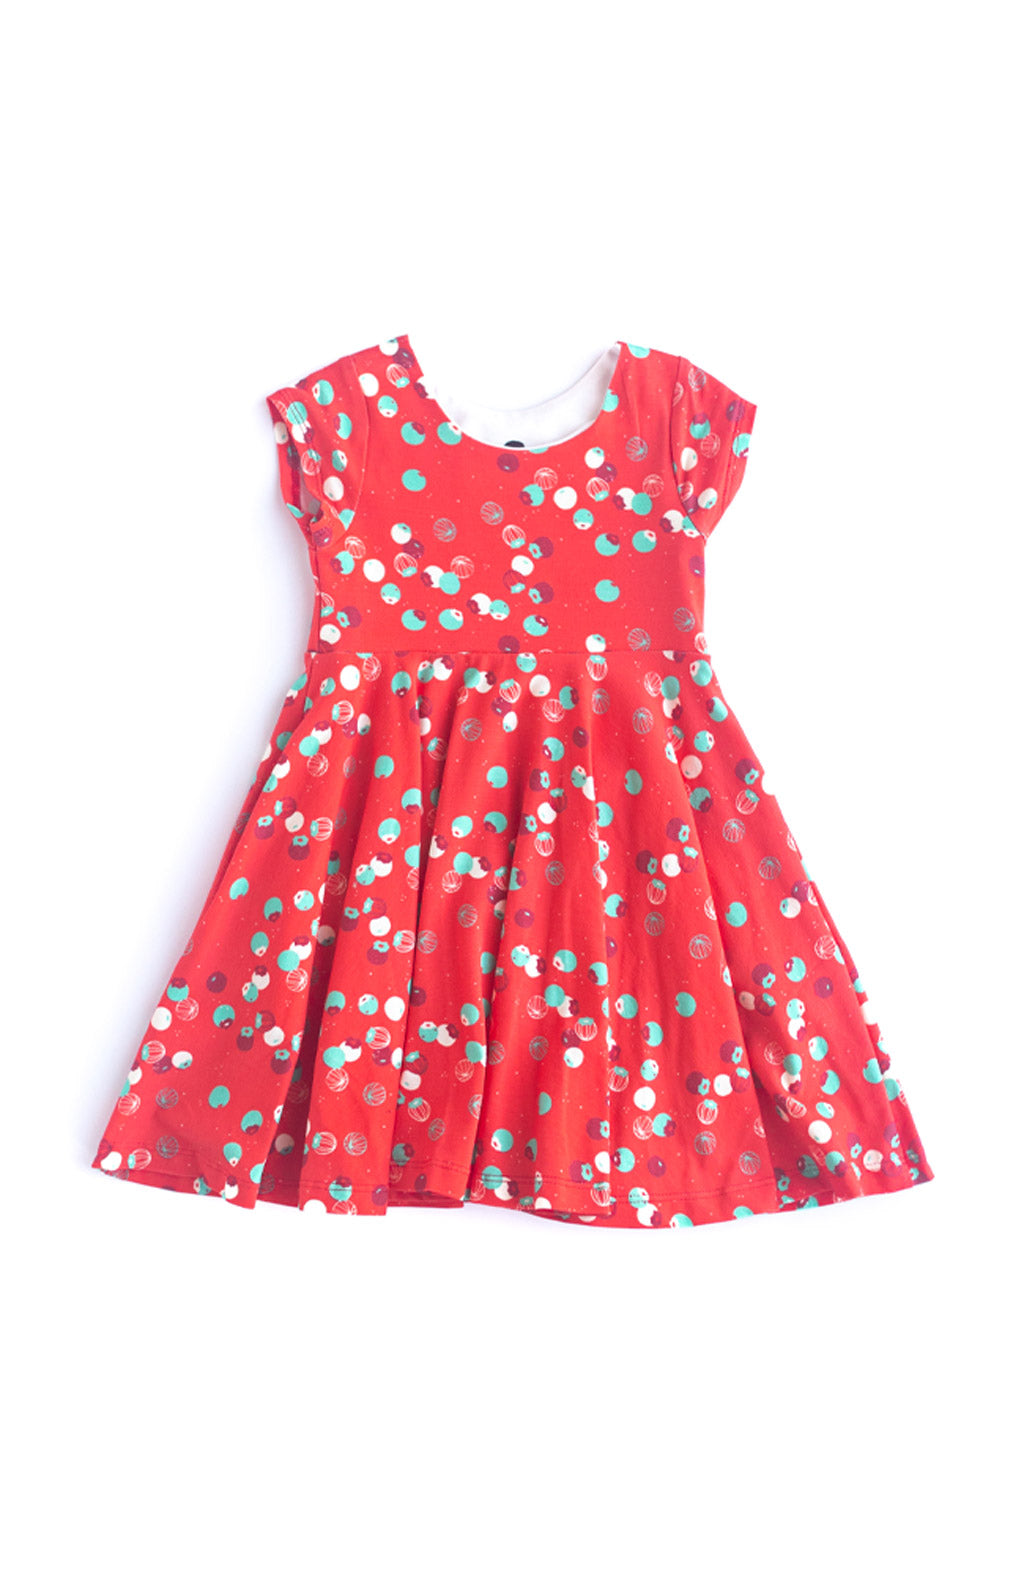 Tiny Berries Kids Twirl Dress in Ruby